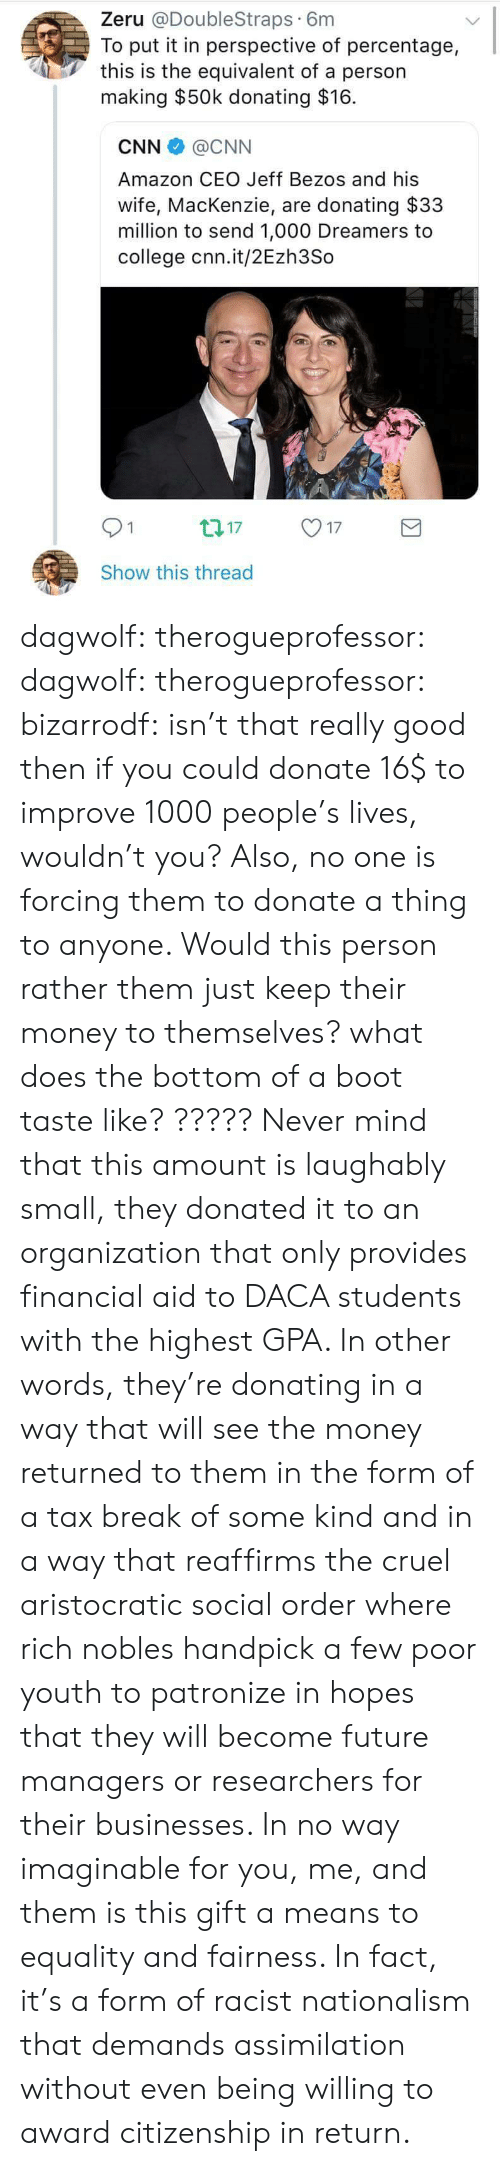 Amazon, cnn.com, and College: Zeru @DoubleStraps 6m  To put it in perspective of percentage,  this is the equivalent of a person  making $50k donating $16.  CNN @CNN  Amazon CEO Jeff Bezos and his  wife, MacKenzie, are donating $33  million to send 1,000 Dreamers to  college cnn.it/2Ezh3So  01  17  Show this thread dagwolf:  therogueprofessor:  dagwolf:  therogueprofessor:   bizarrodf:  isn't that really good then if you could donate 16$ to improve 1000 people's lives, wouldn't you?  Also, no one is forcing them to donate a thing to anyone. Would this person rather them just keep their money to themselves?   what does the bottom of a boot taste like?  ?????  Never mind that this amount is laughably small, they donated it to an organization that only provides financial aid to DACA students with the highest GPA. In other words, they're donating in a way that will see the money returned to them in the form of a tax break of some kind and in a way that reaffirms the cruel aristocratic social order where rich nobles handpick a few poor youth to patronize in hopes that they will become future managers or researchers for their businesses. In no way imaginable for you, me, and them is this gift a means to equality and fairness. In fact, it's a form of racist nationalism that demands assimilation without even being willing to award citizenship in return.